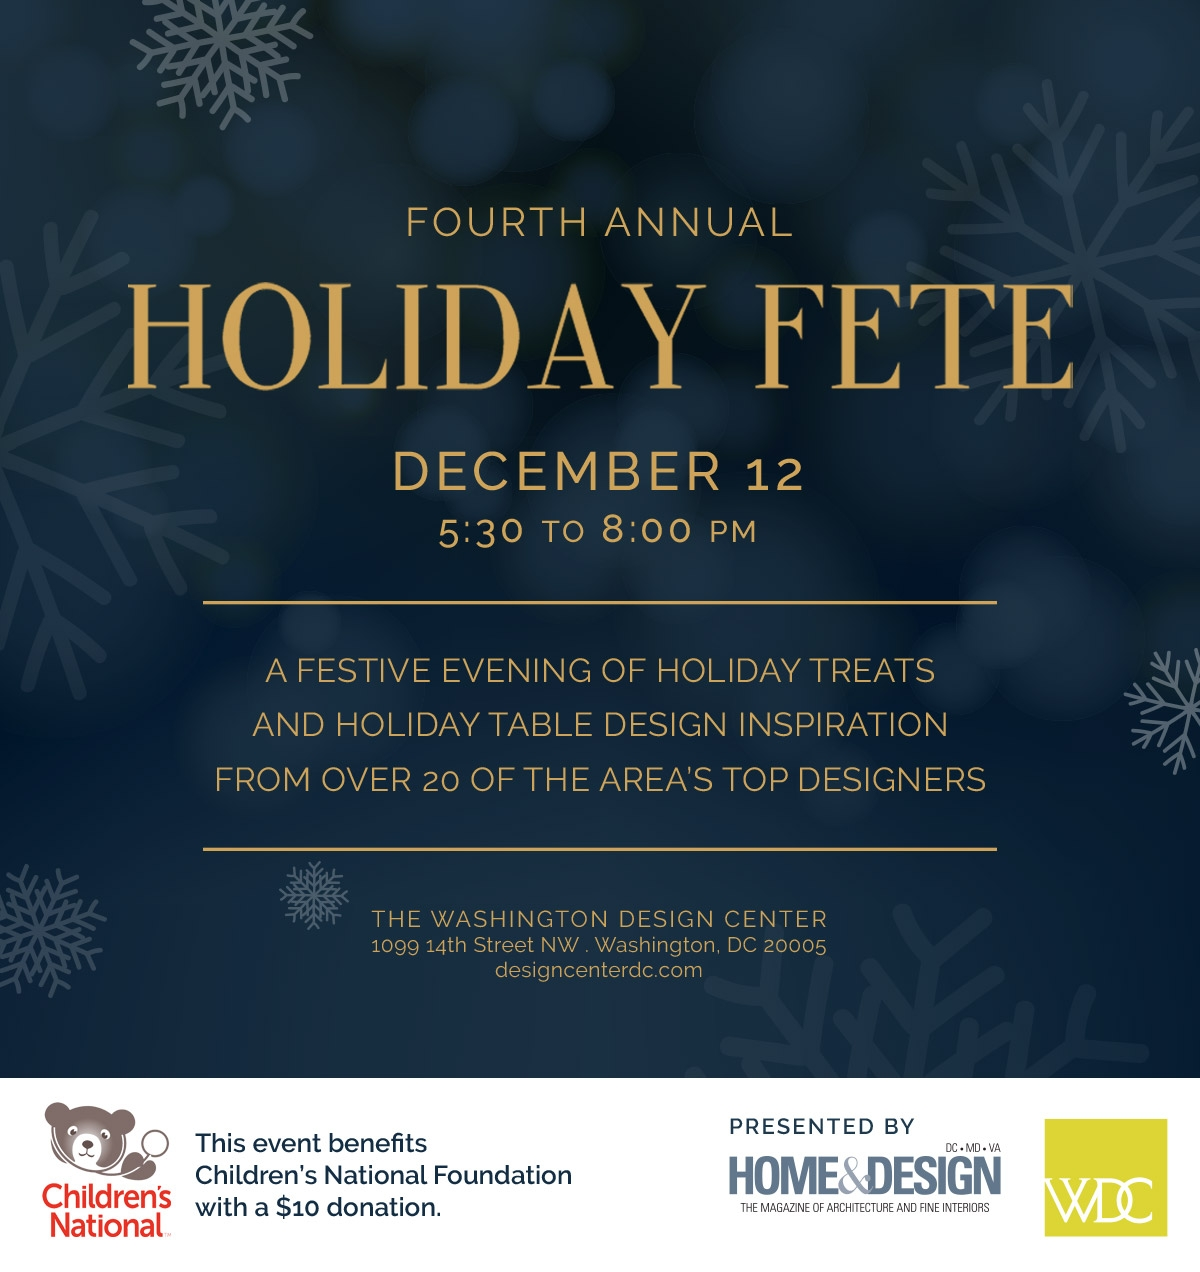 4th Annual Holiday Fete